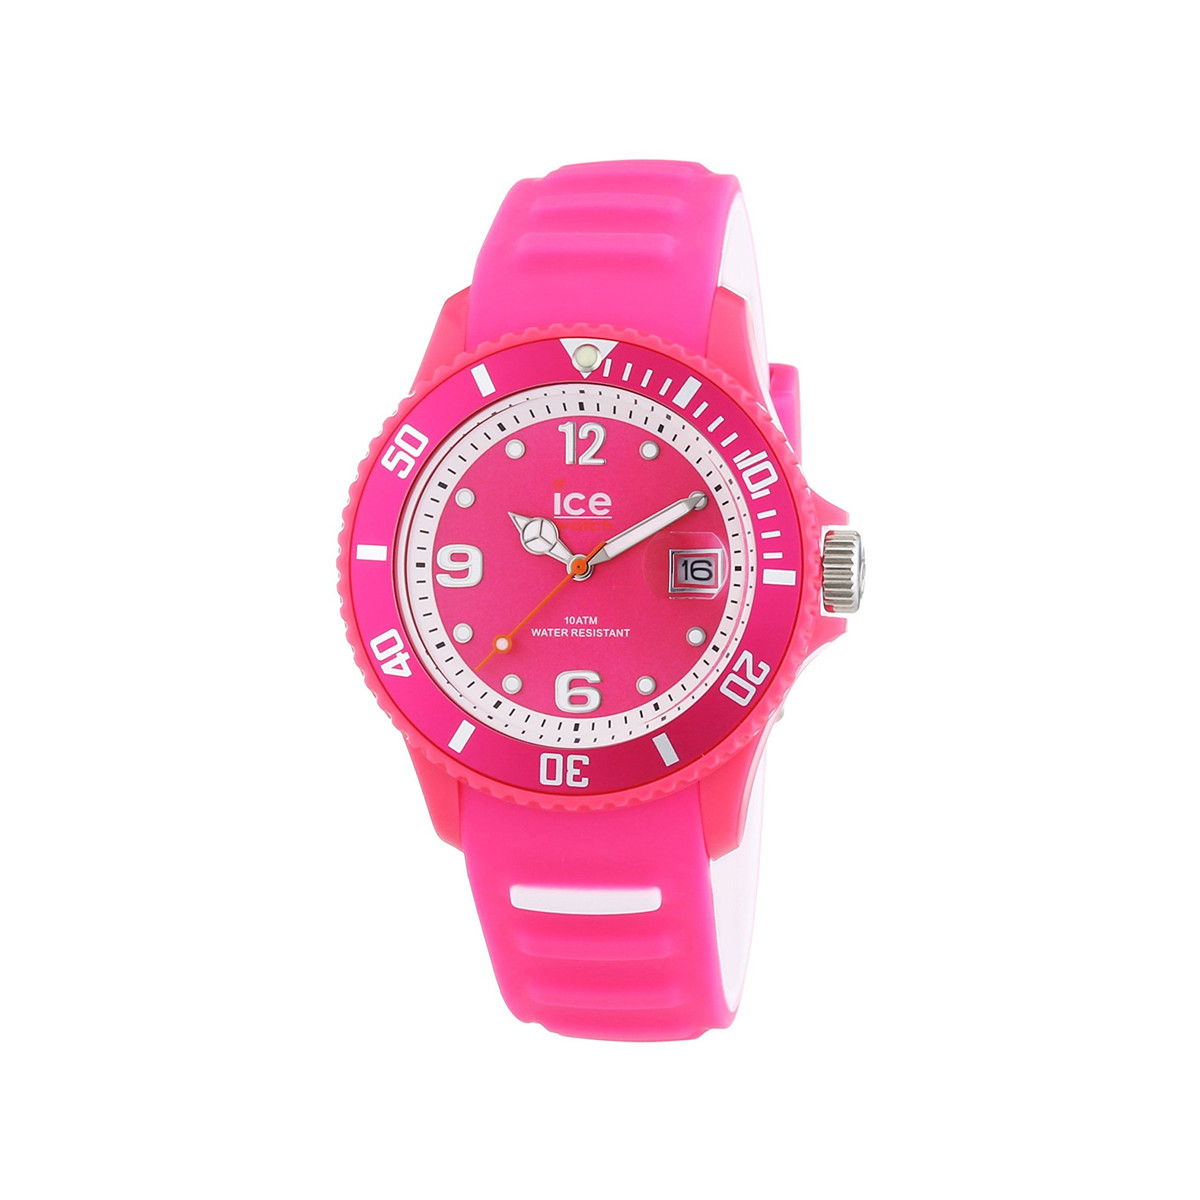 Montre Ice Watch femme rose - vue 1